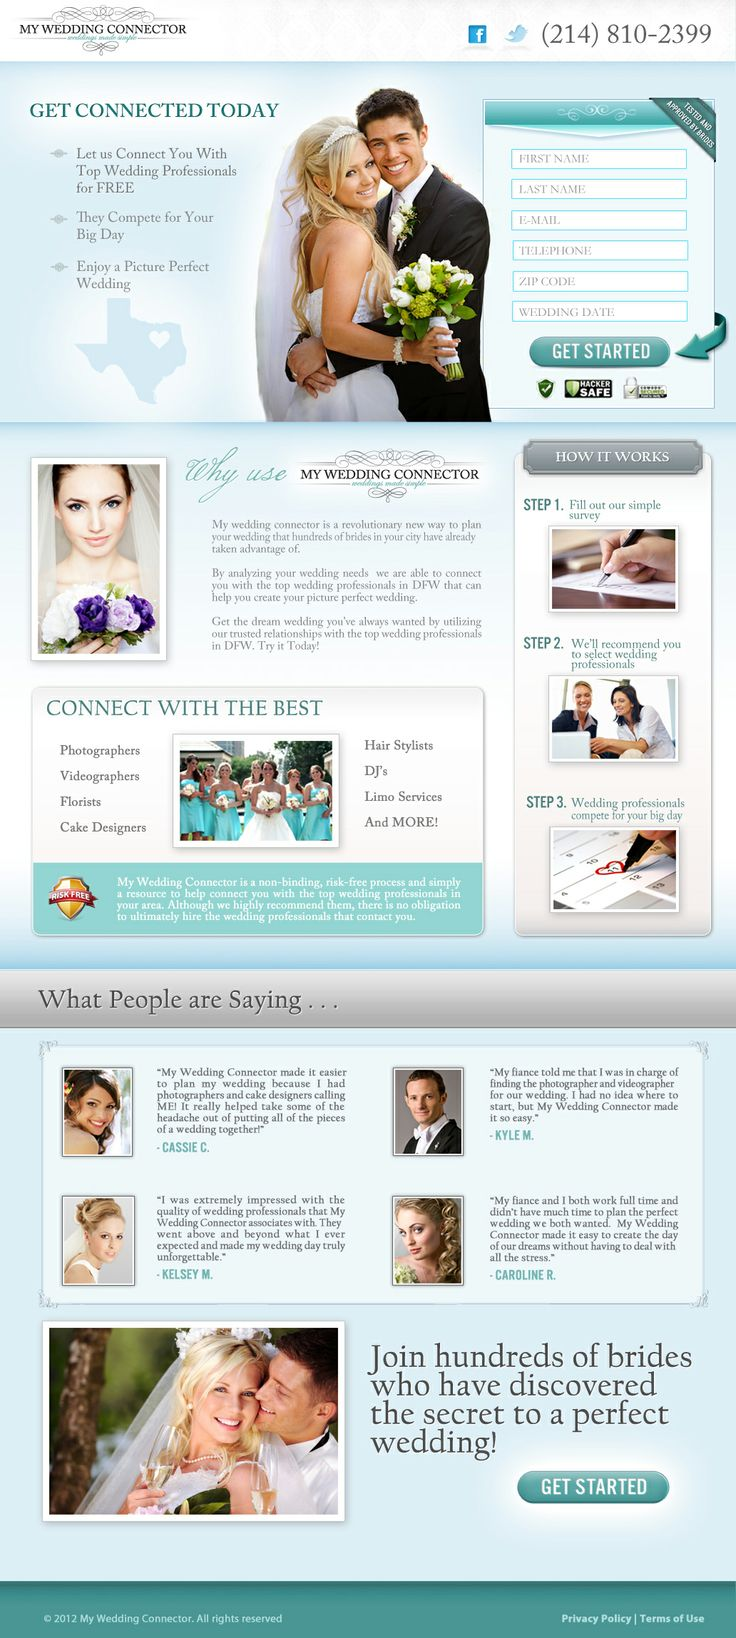 My Wedding Connector is an online resource that recommends elite vendors in the wedding industry by region, and puts those vendors in direct contact with brides-to-be. Visitors to the page request free quotes from the best local wedding photographers, cake designers, videographers, venues, and more.  Property of MyWeddingConnector®